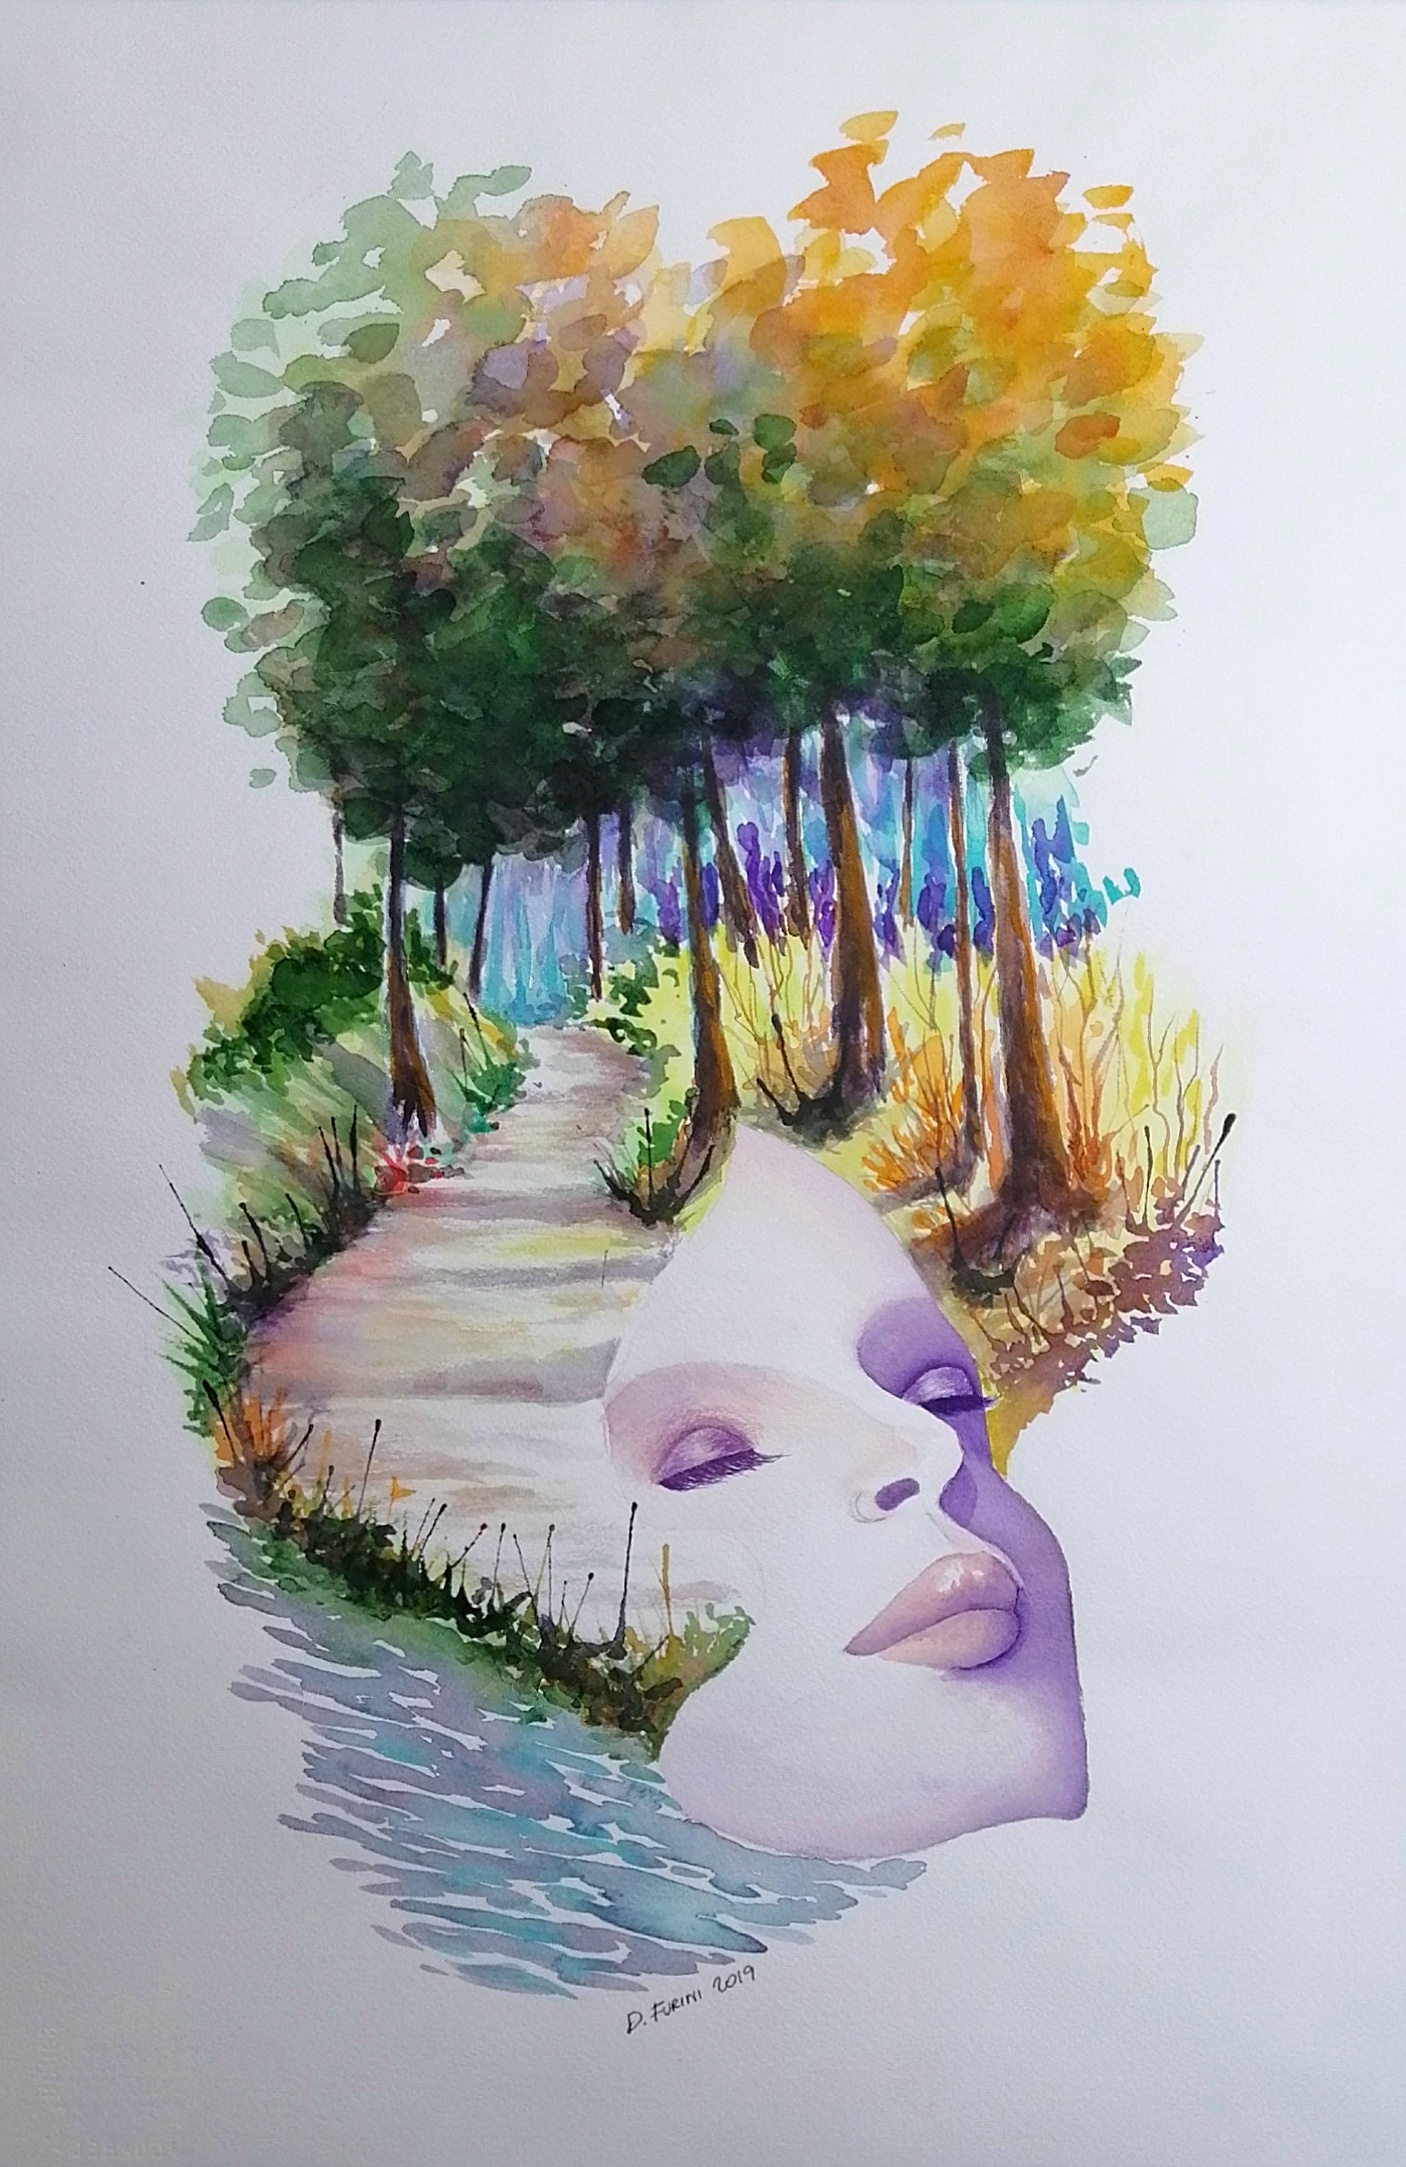 56x38 - watercolor on Arches paper